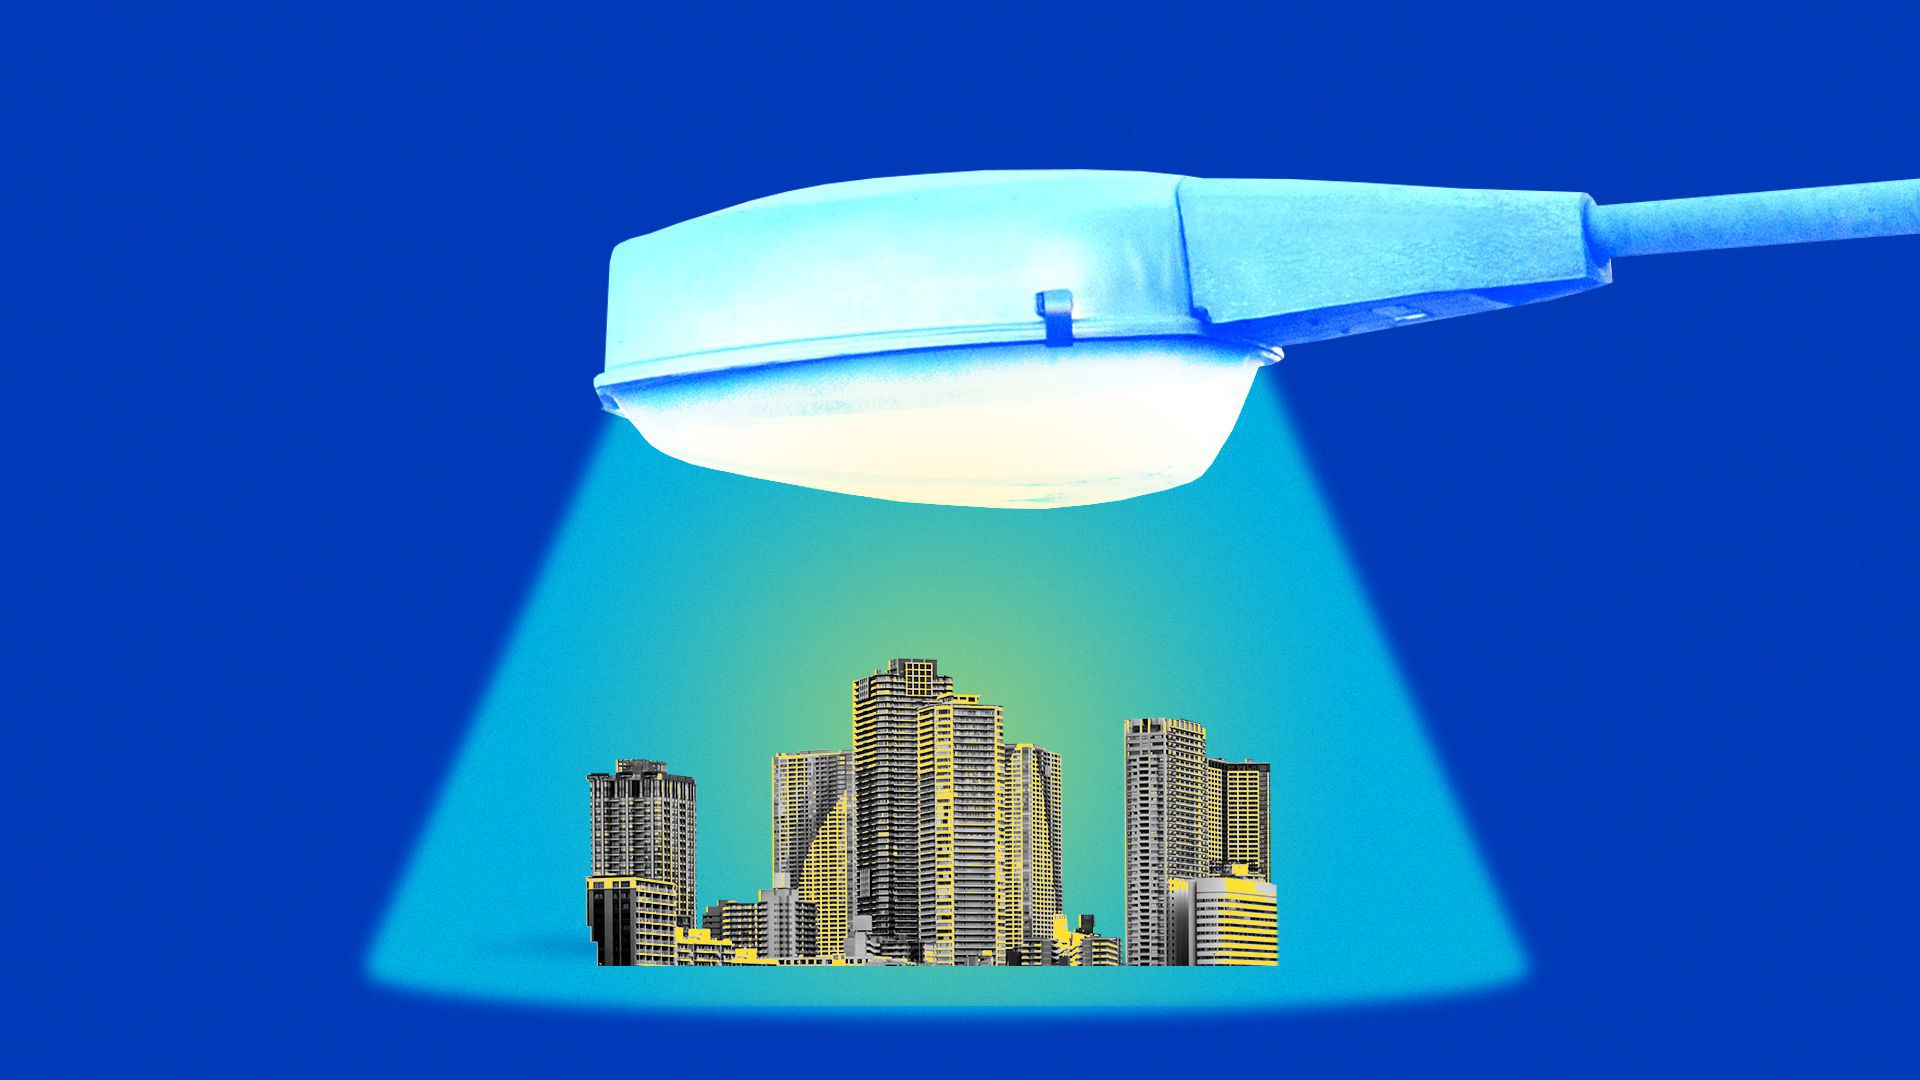 Illustration of a giant street lamp lighting a small city